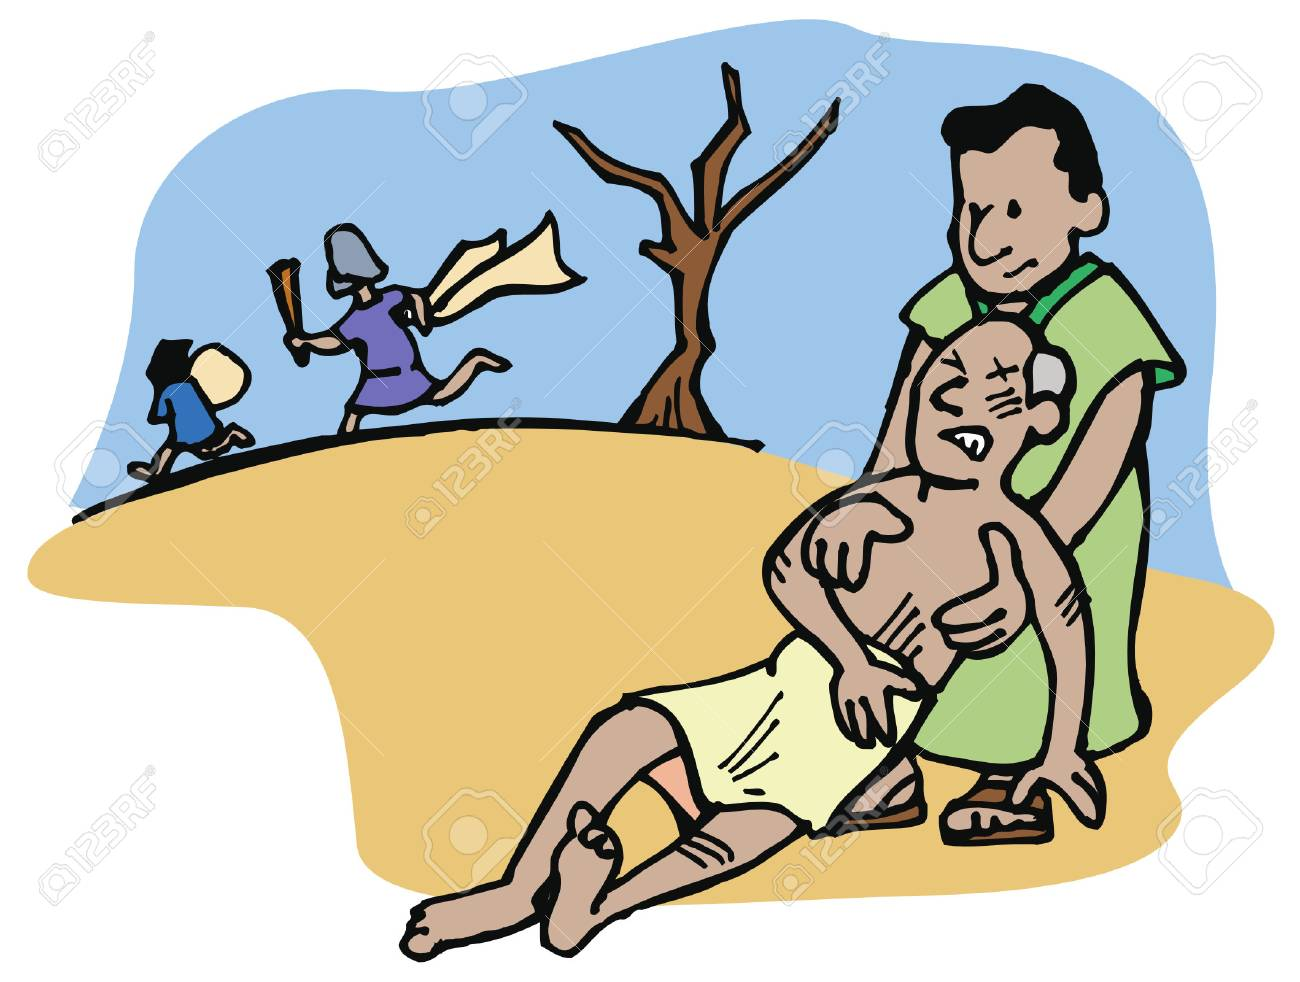 The Good Samaritan helps and takes care of a man who has been...